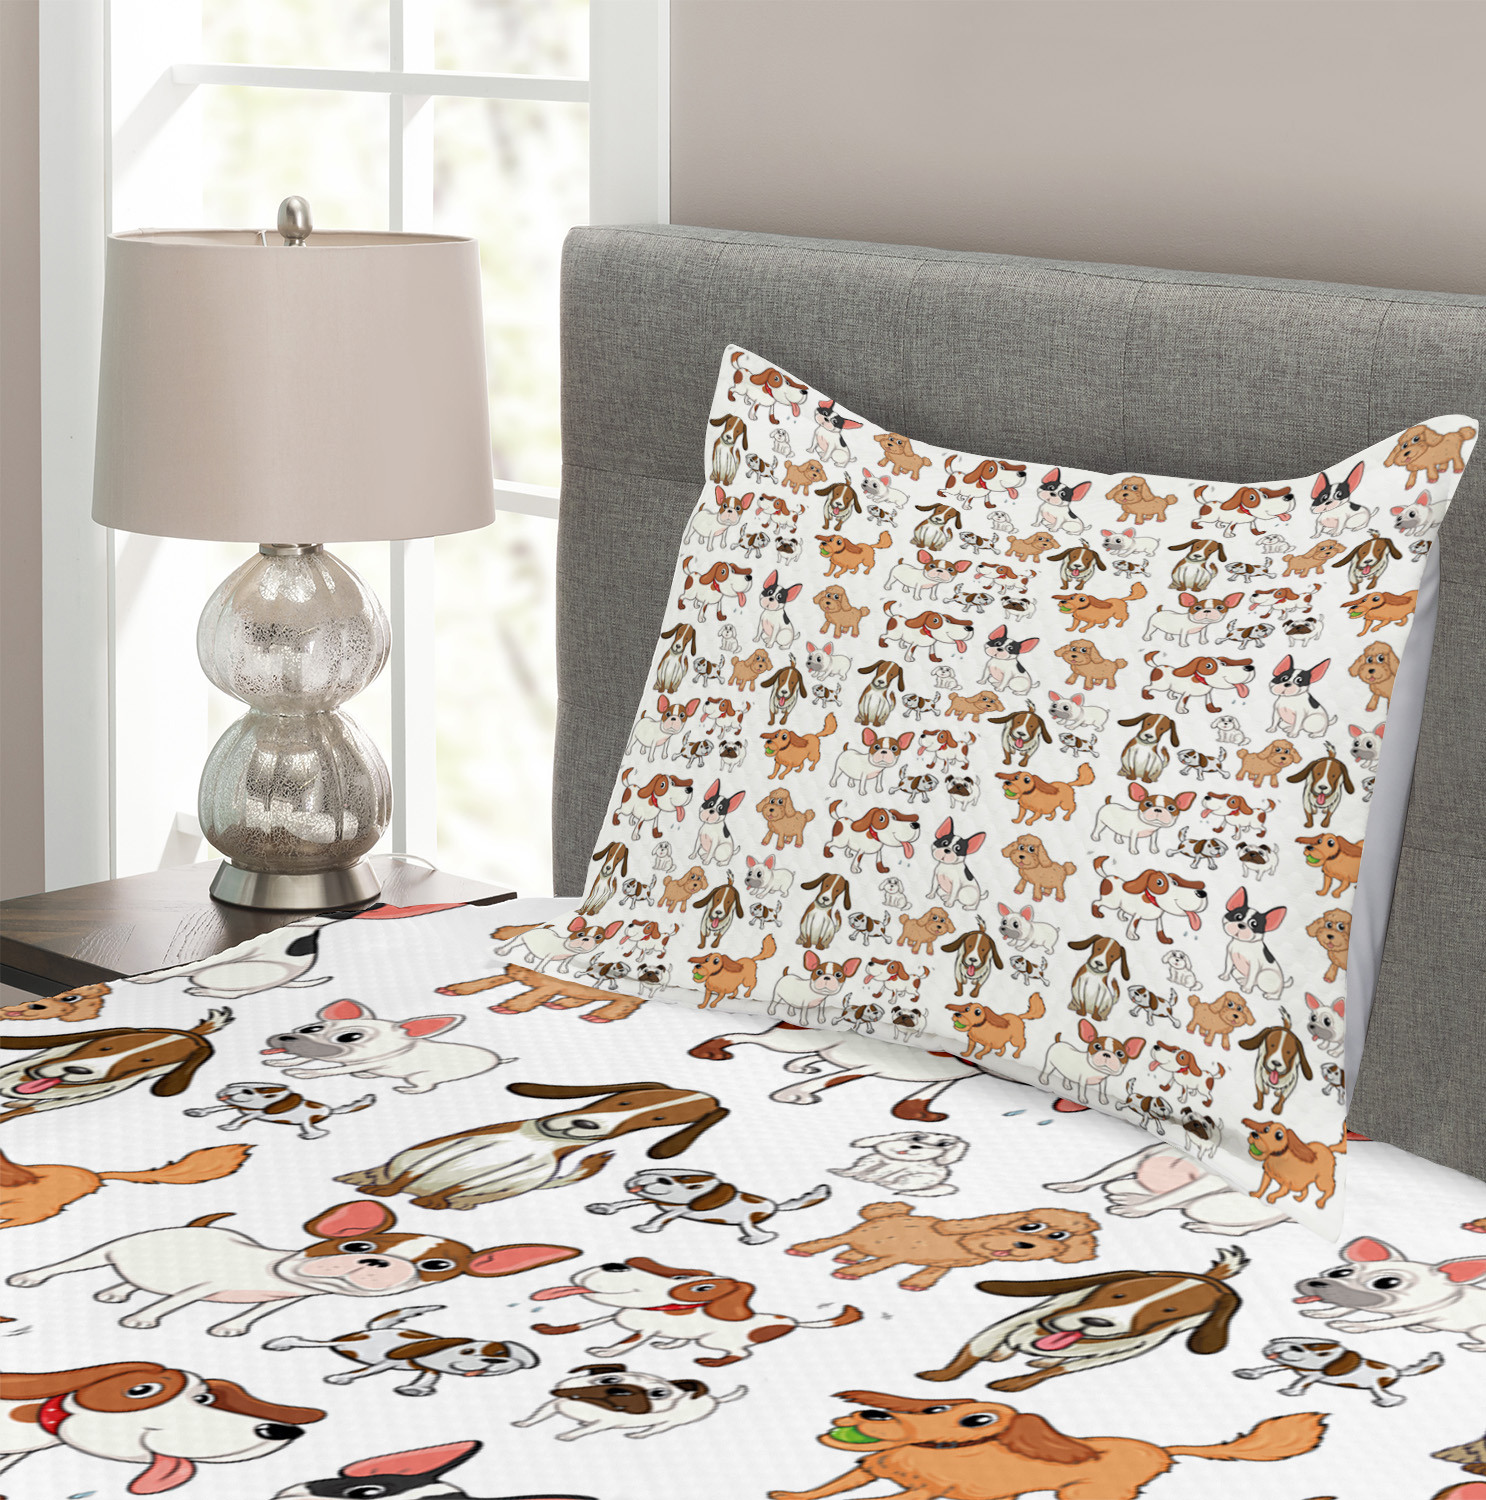 Cartoon Characters Print Dog Lover Quilted Bedspread /& Pillow Shams Set